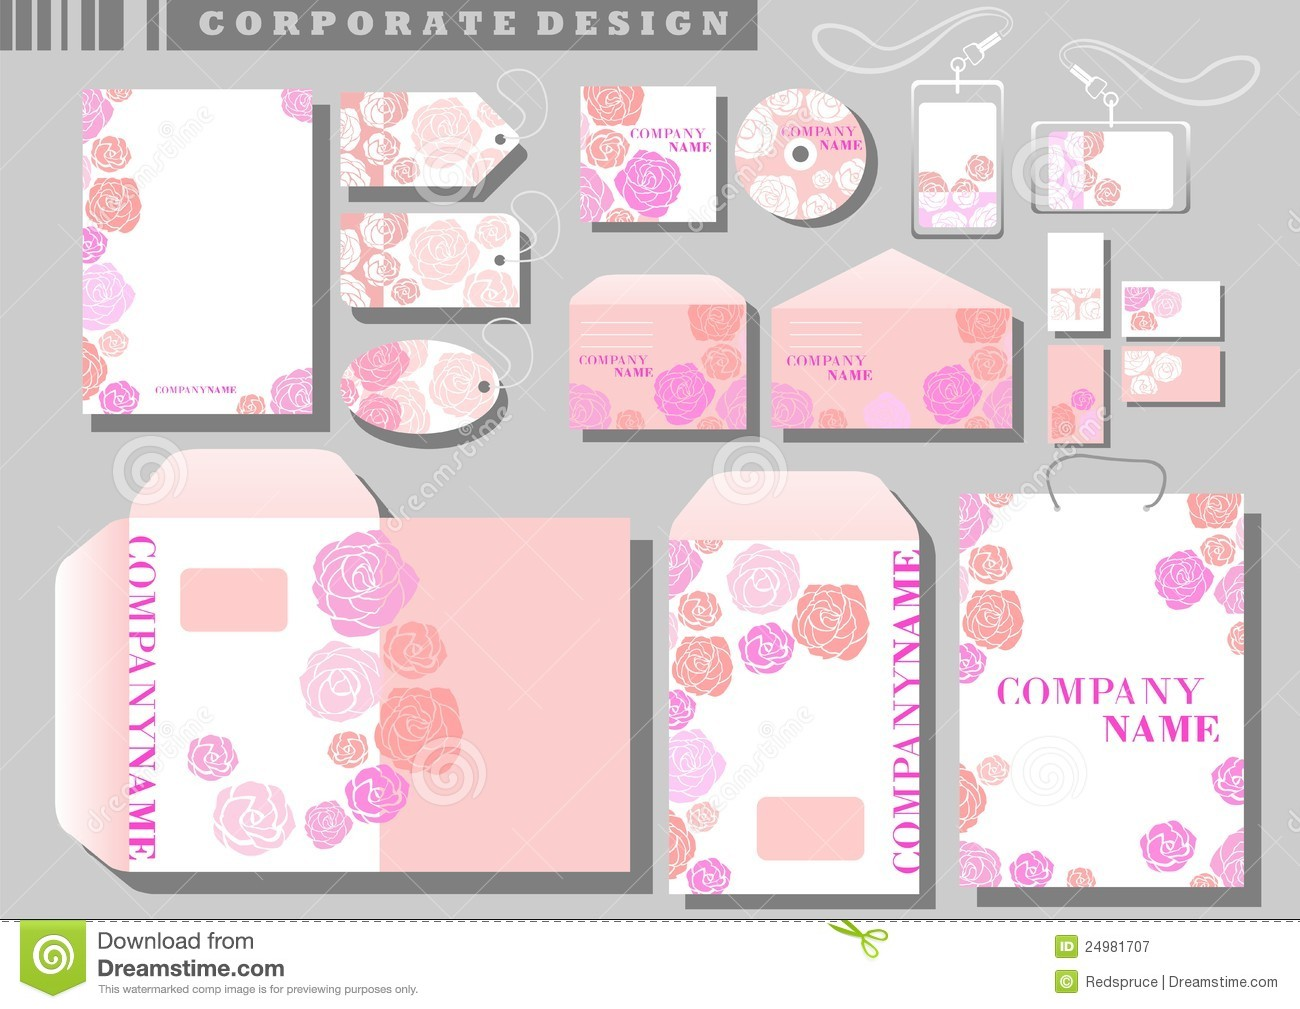 corporate identity template pink roses royalty free stock